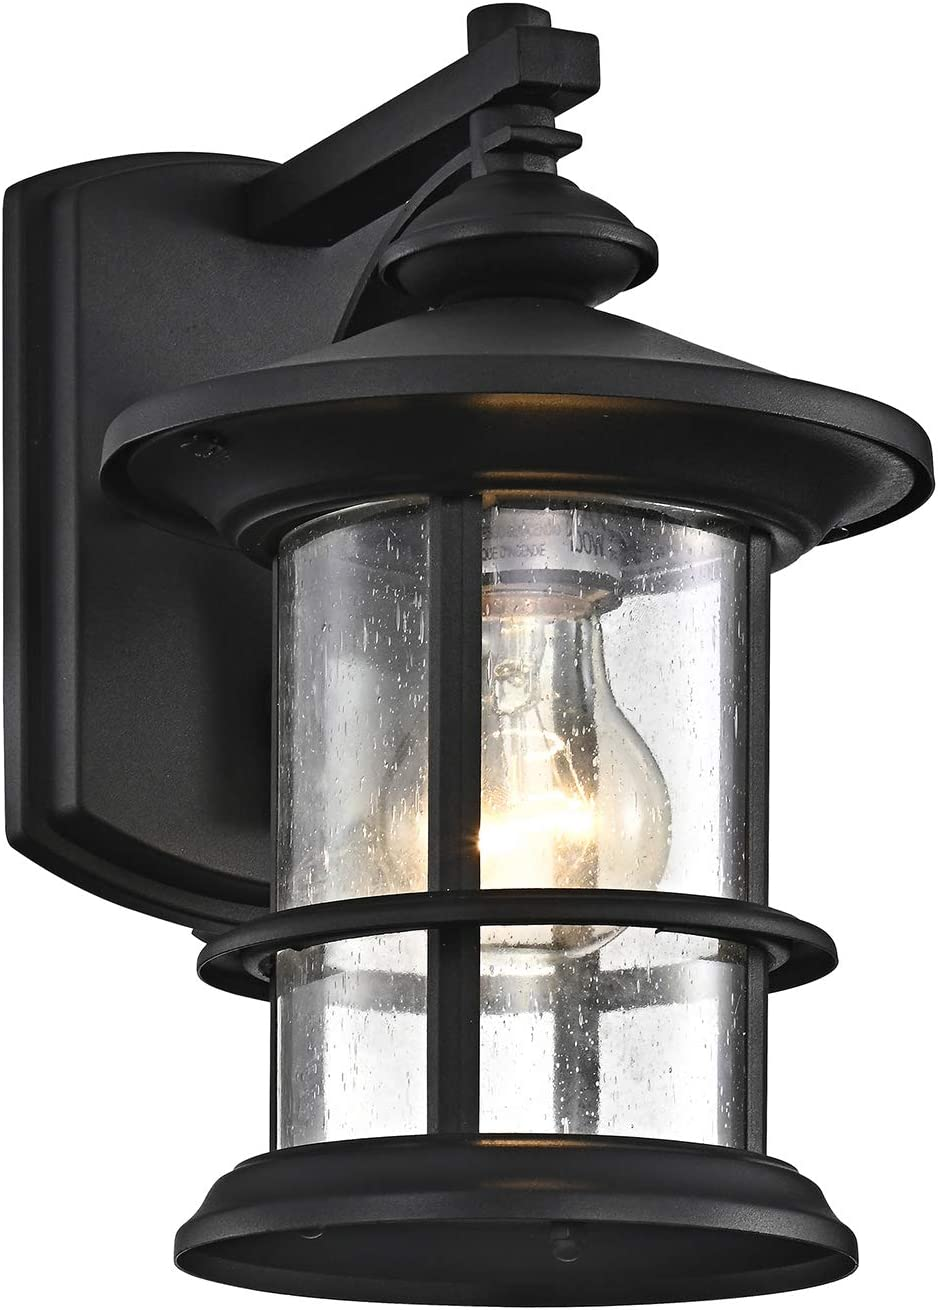 Micsiu Outdoor Wall Light Fixture Exterior Wall Mount Lantern Waterproof Vintage Wall Sconce With Clear Seedy Glass For Front Porch Patio Backyard Textured Black 1 Pack Amazon Com